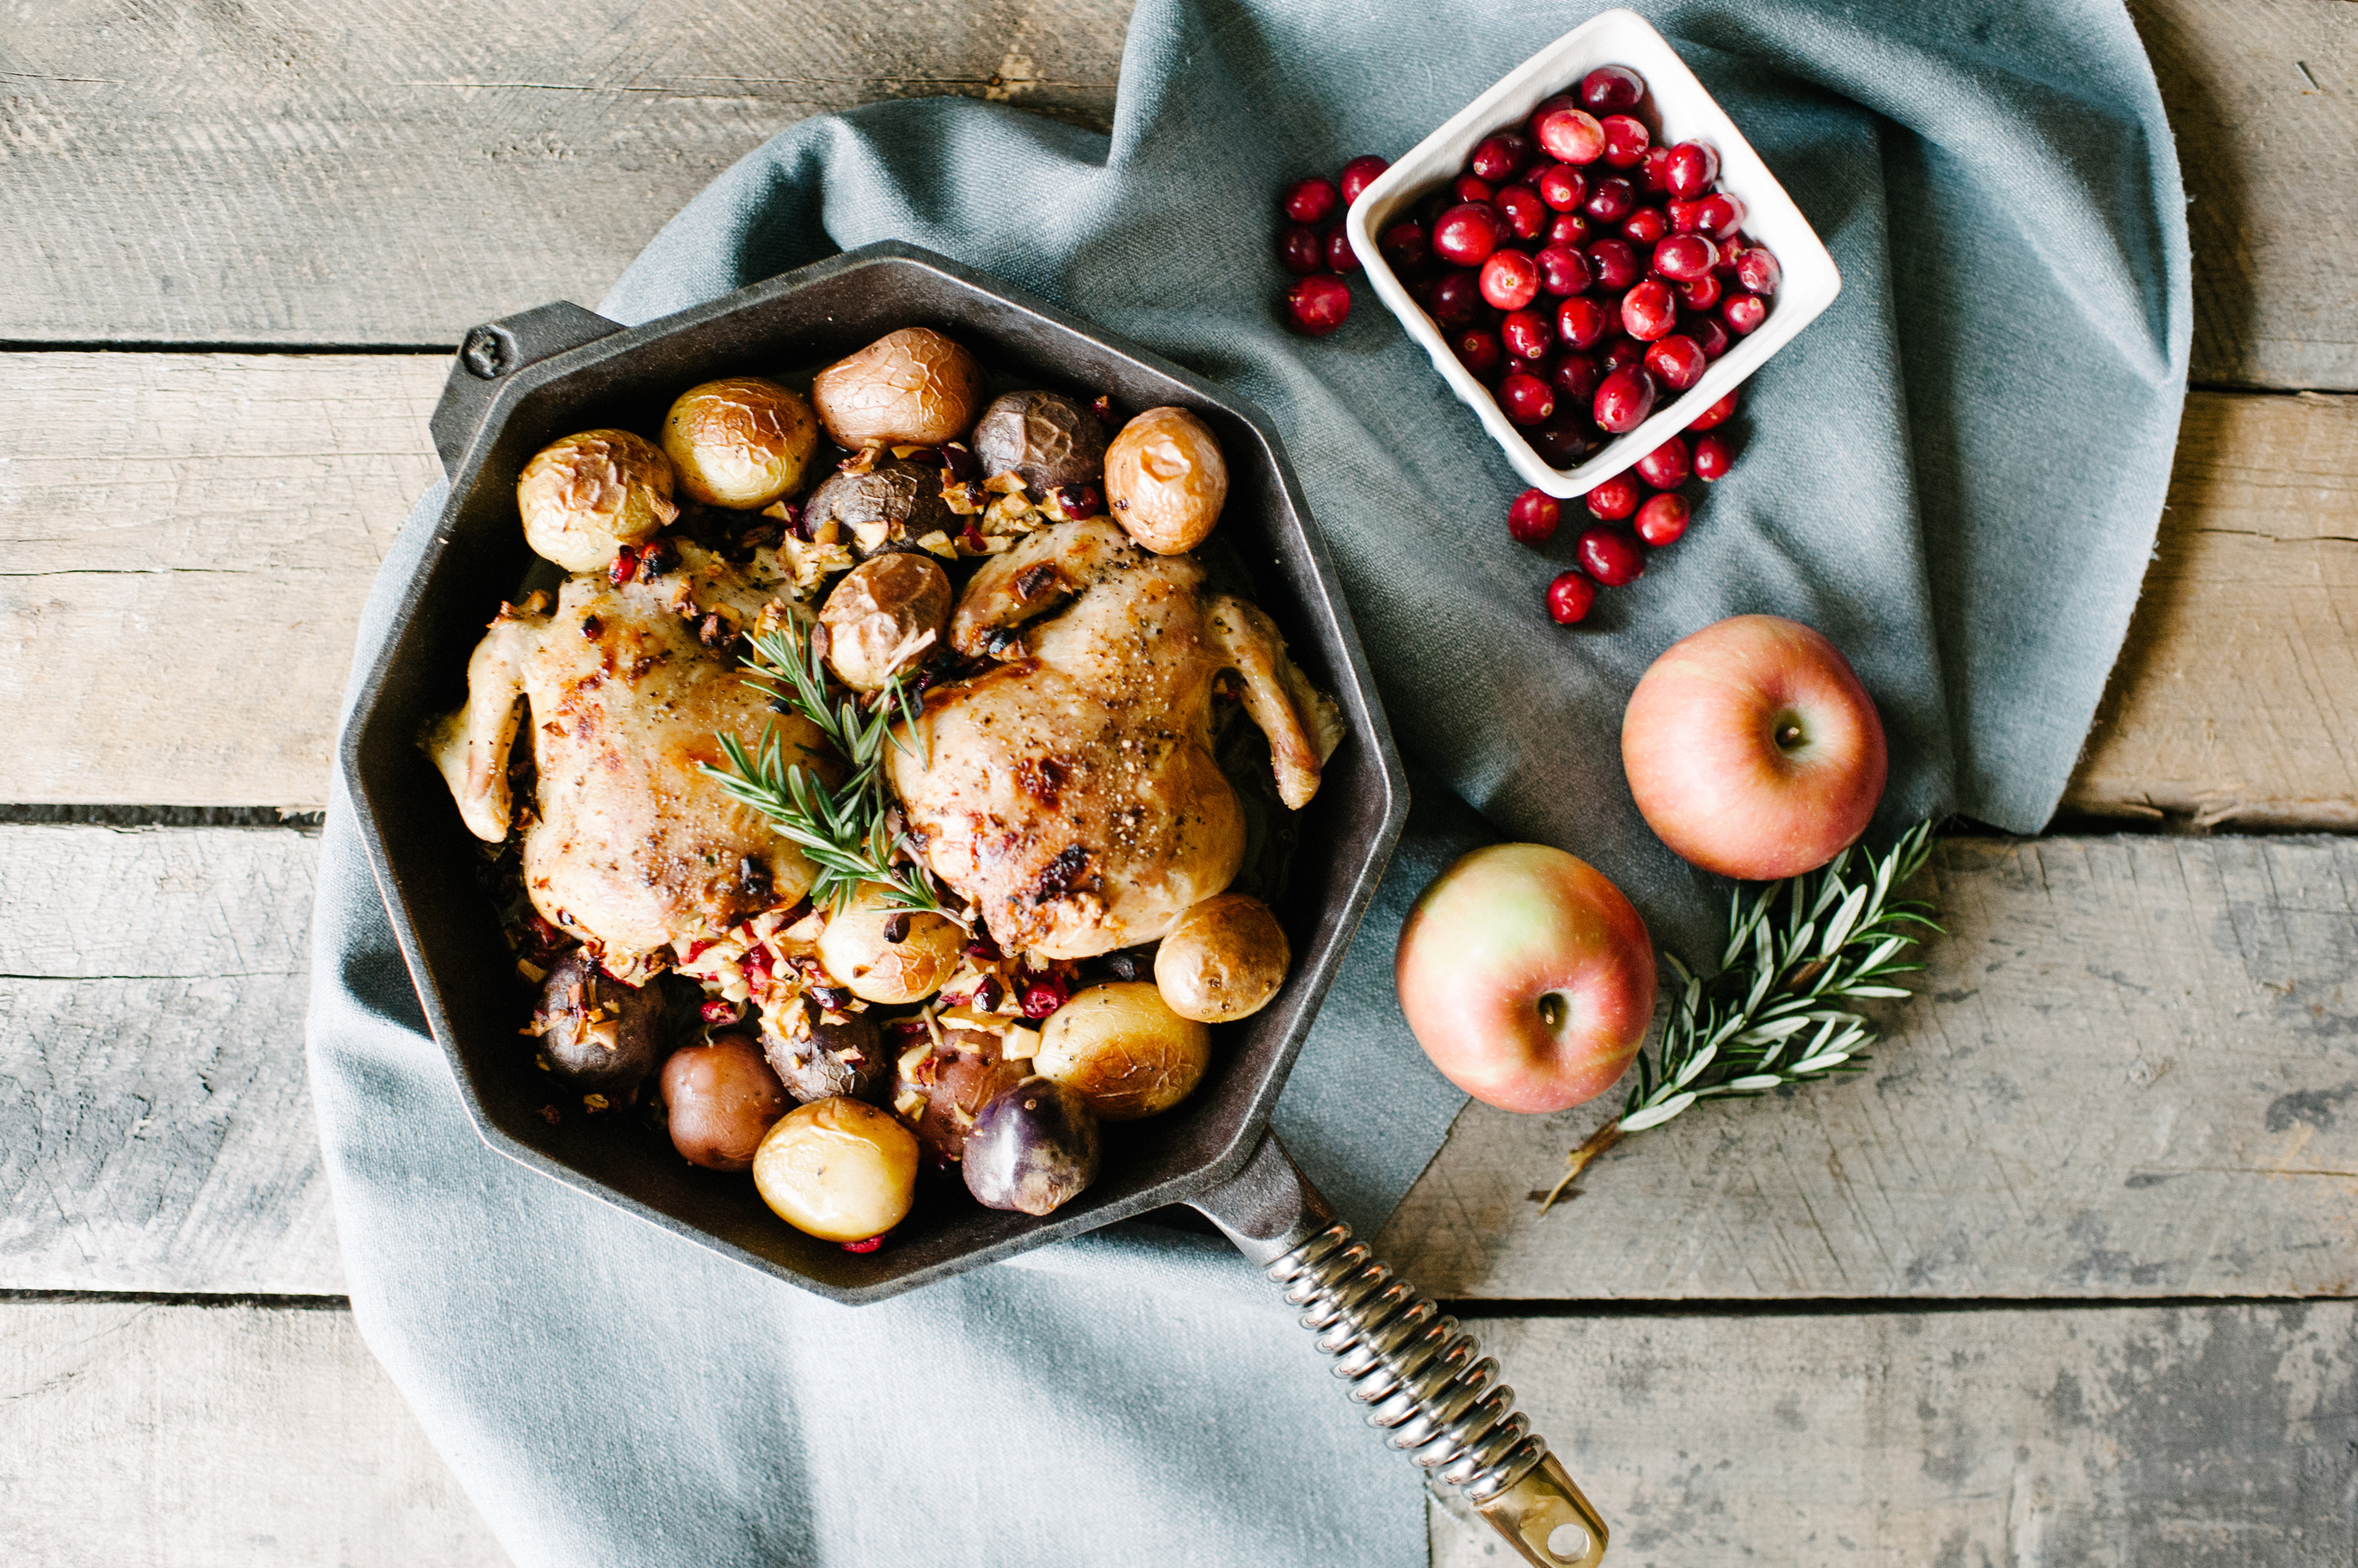 Two Cornish game hens sit snugly in a Finex skillet with potatoes on a table